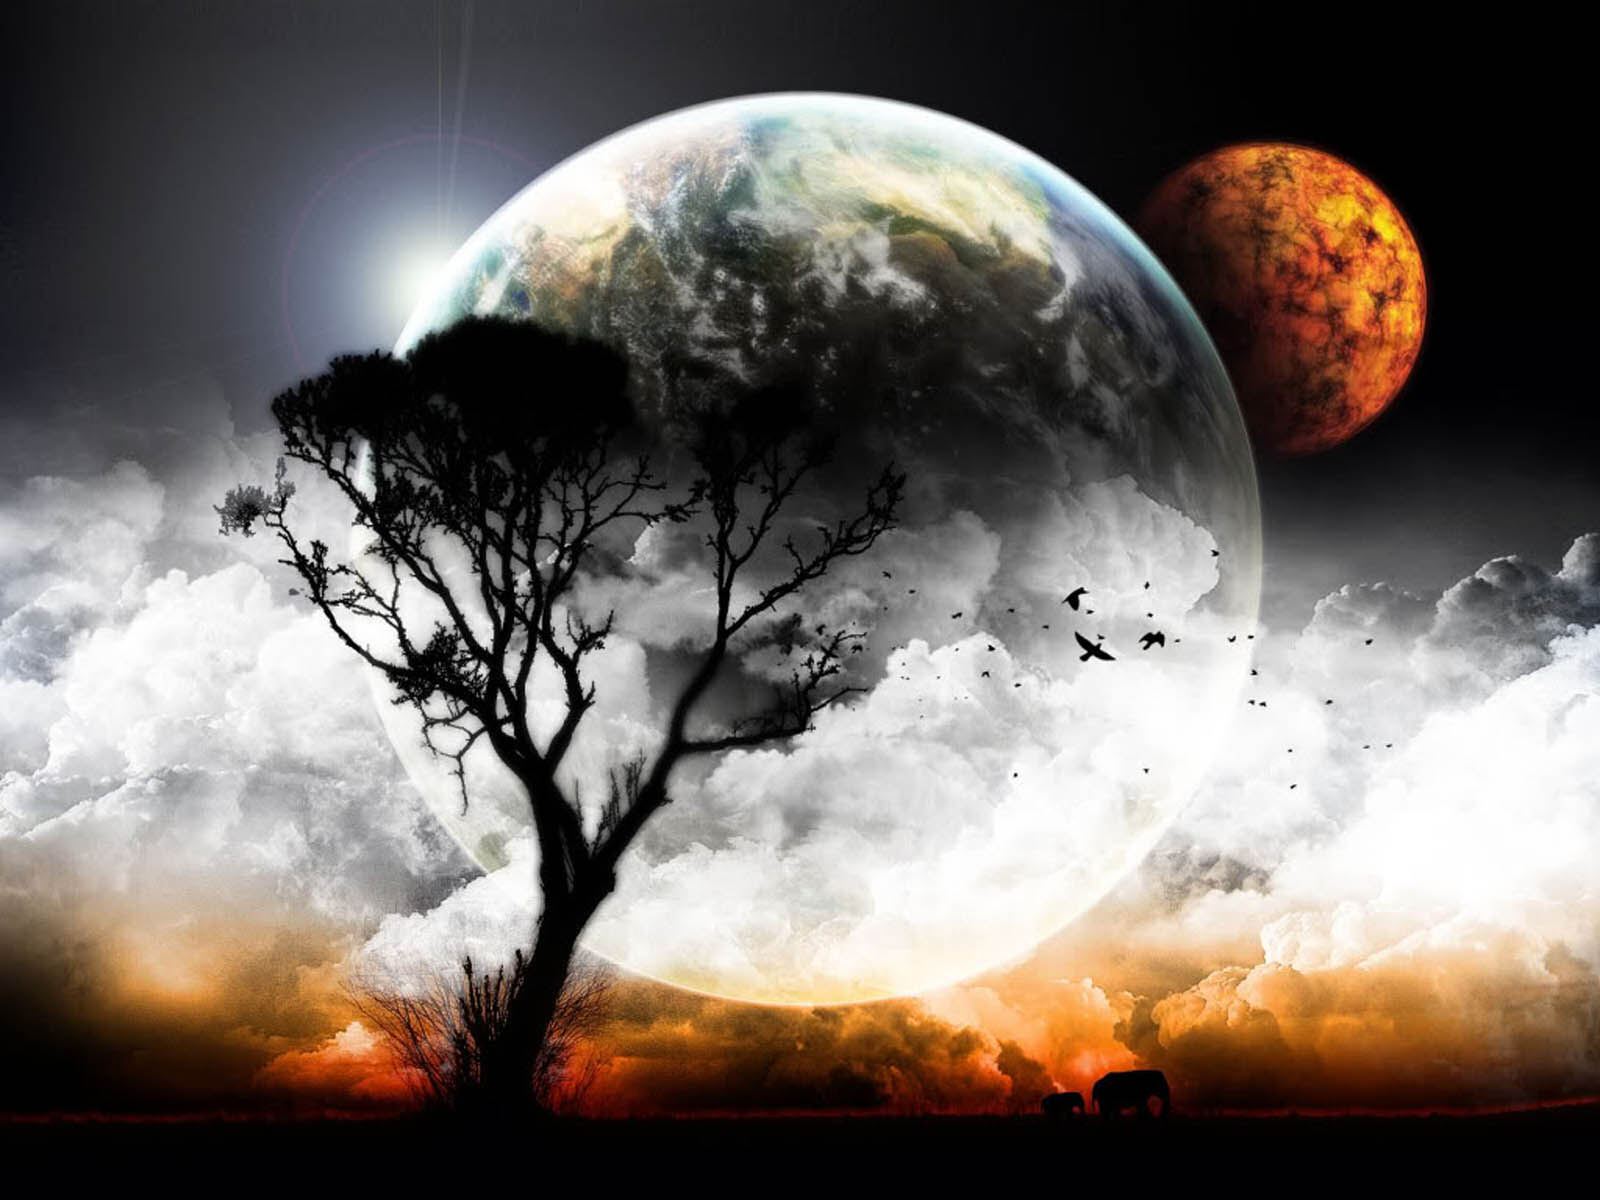 Tag Moon Nature Wallpapers Images Photos Pictures and Backgrounds 1600x1200